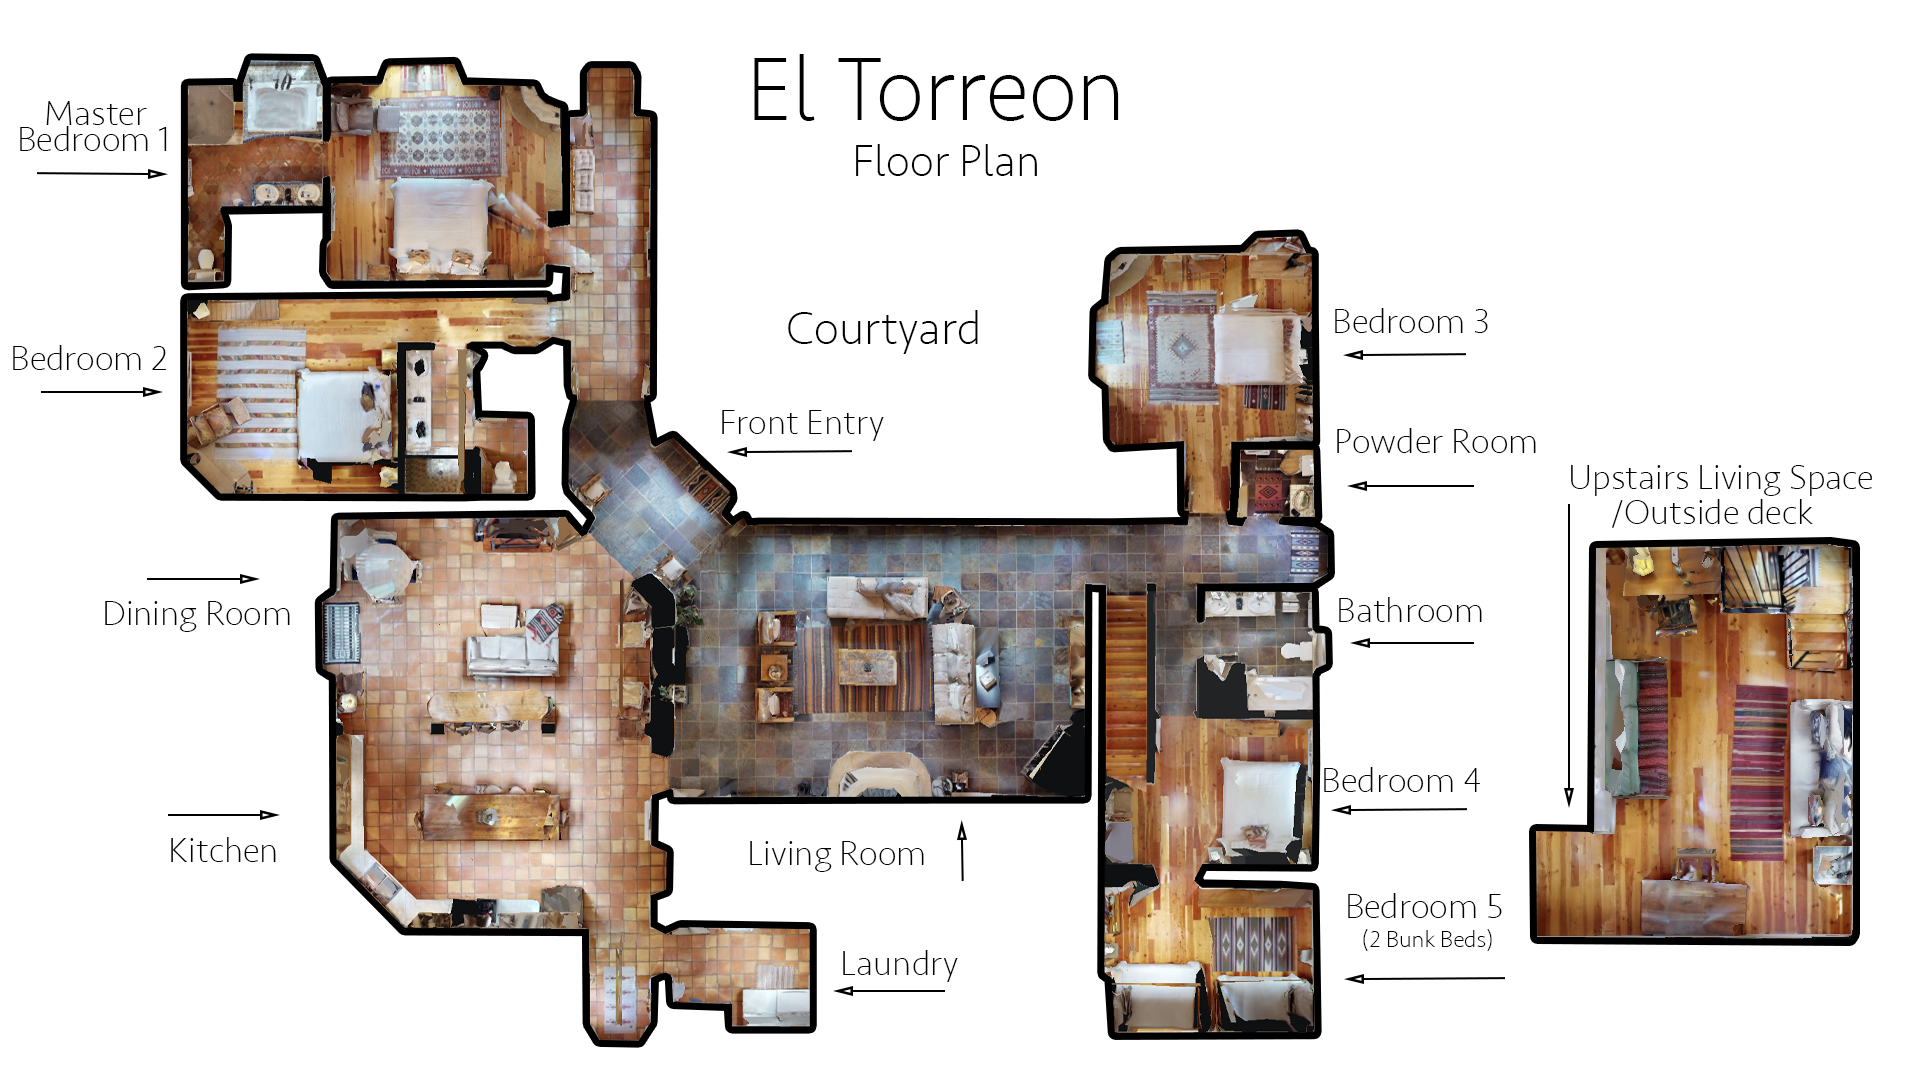 Floor Plan for El Torreon